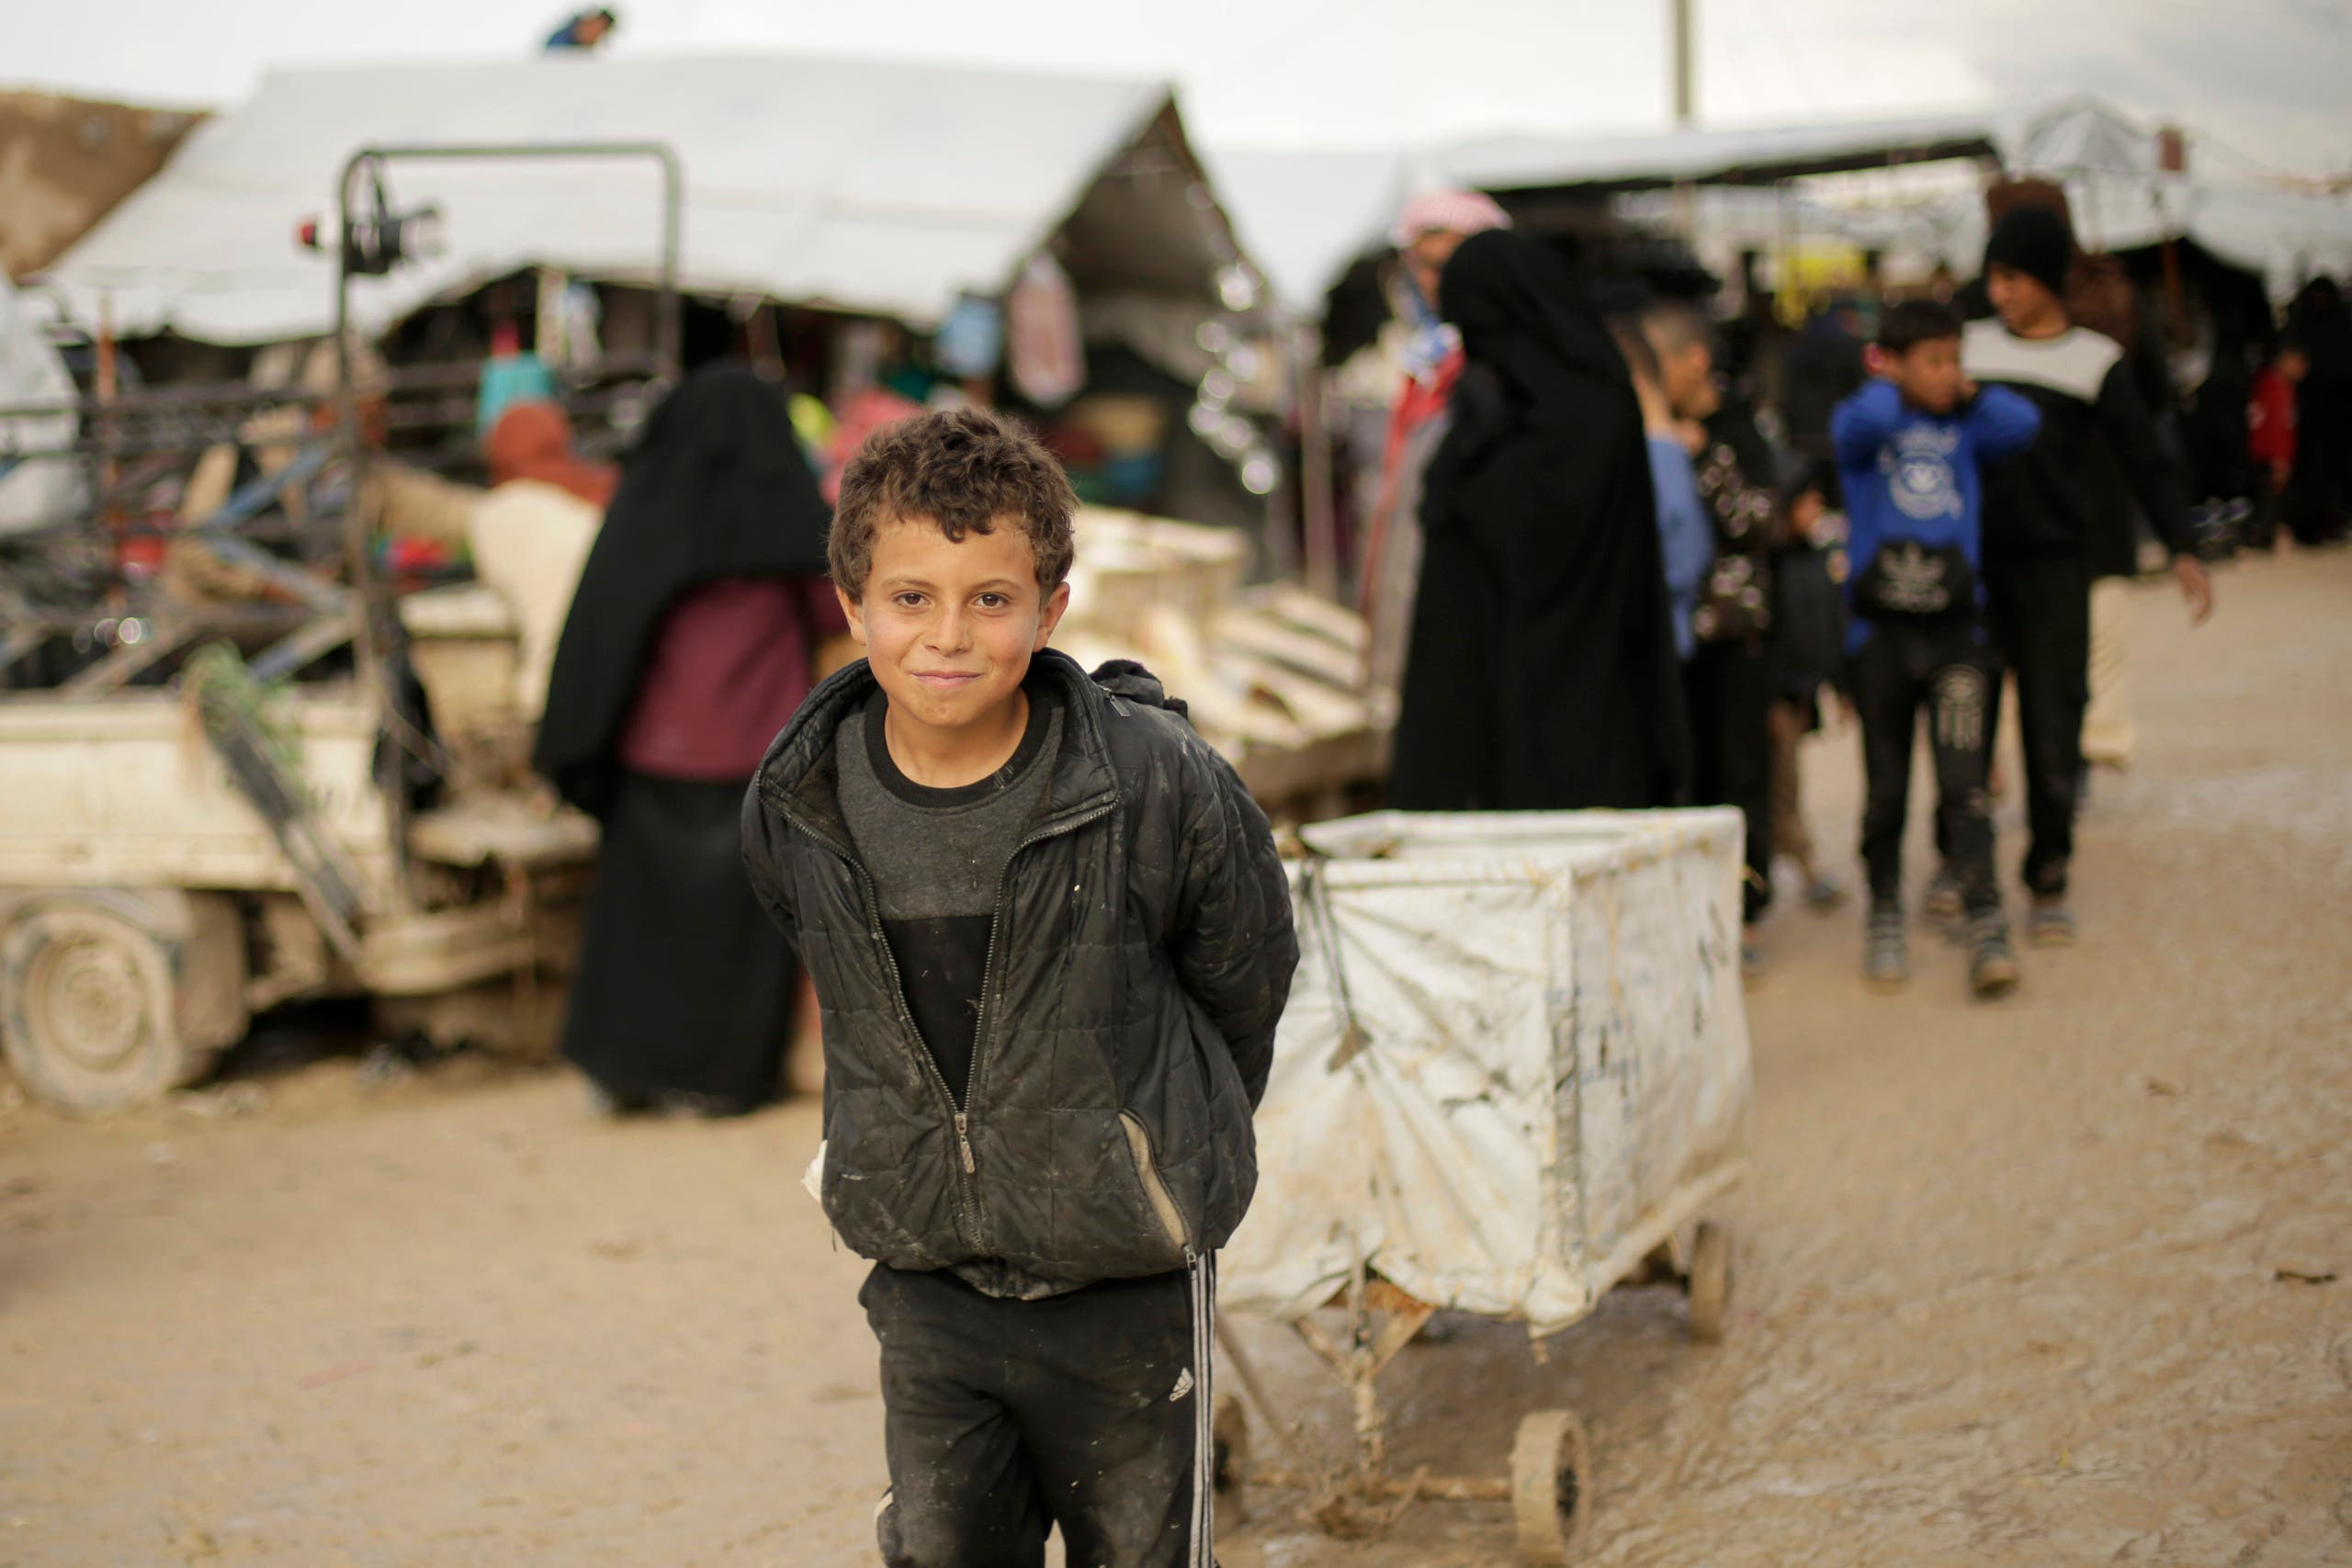 A boy who works as a porter at Al-Hol camp, where families from ISIS-held areas are housed at Hassakeh province, Syria, on March 31, 2019. (AP)